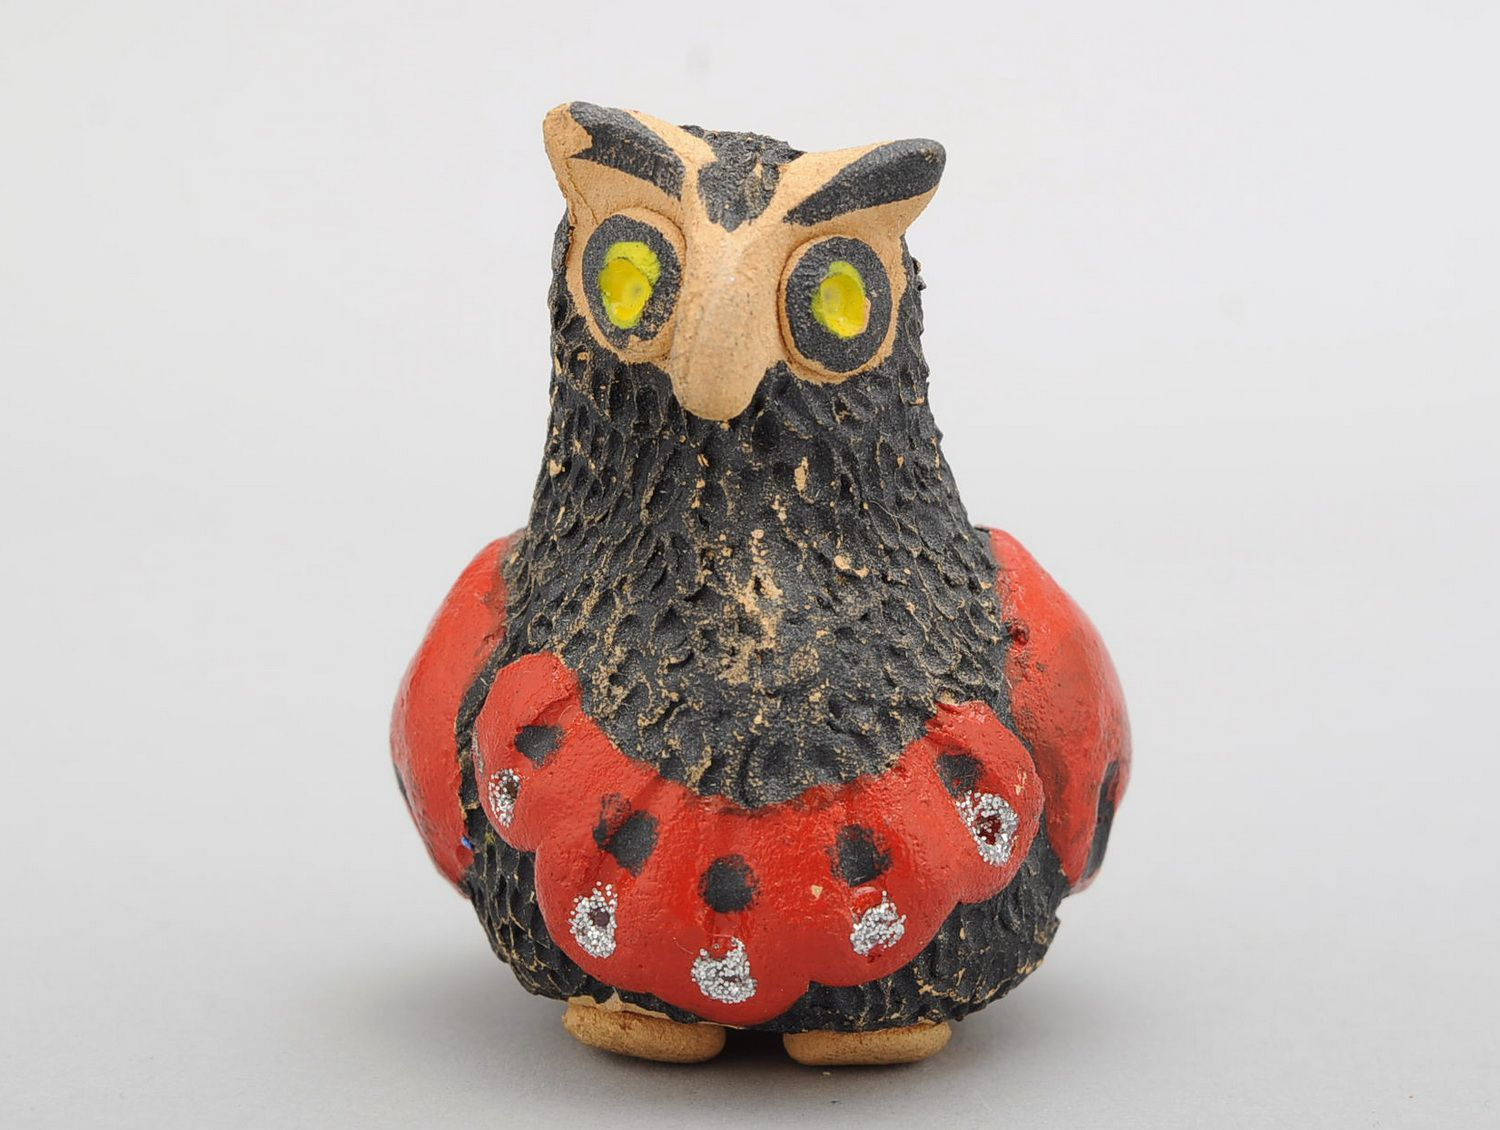 Penny whistle in the form of owl, hand work photo 1